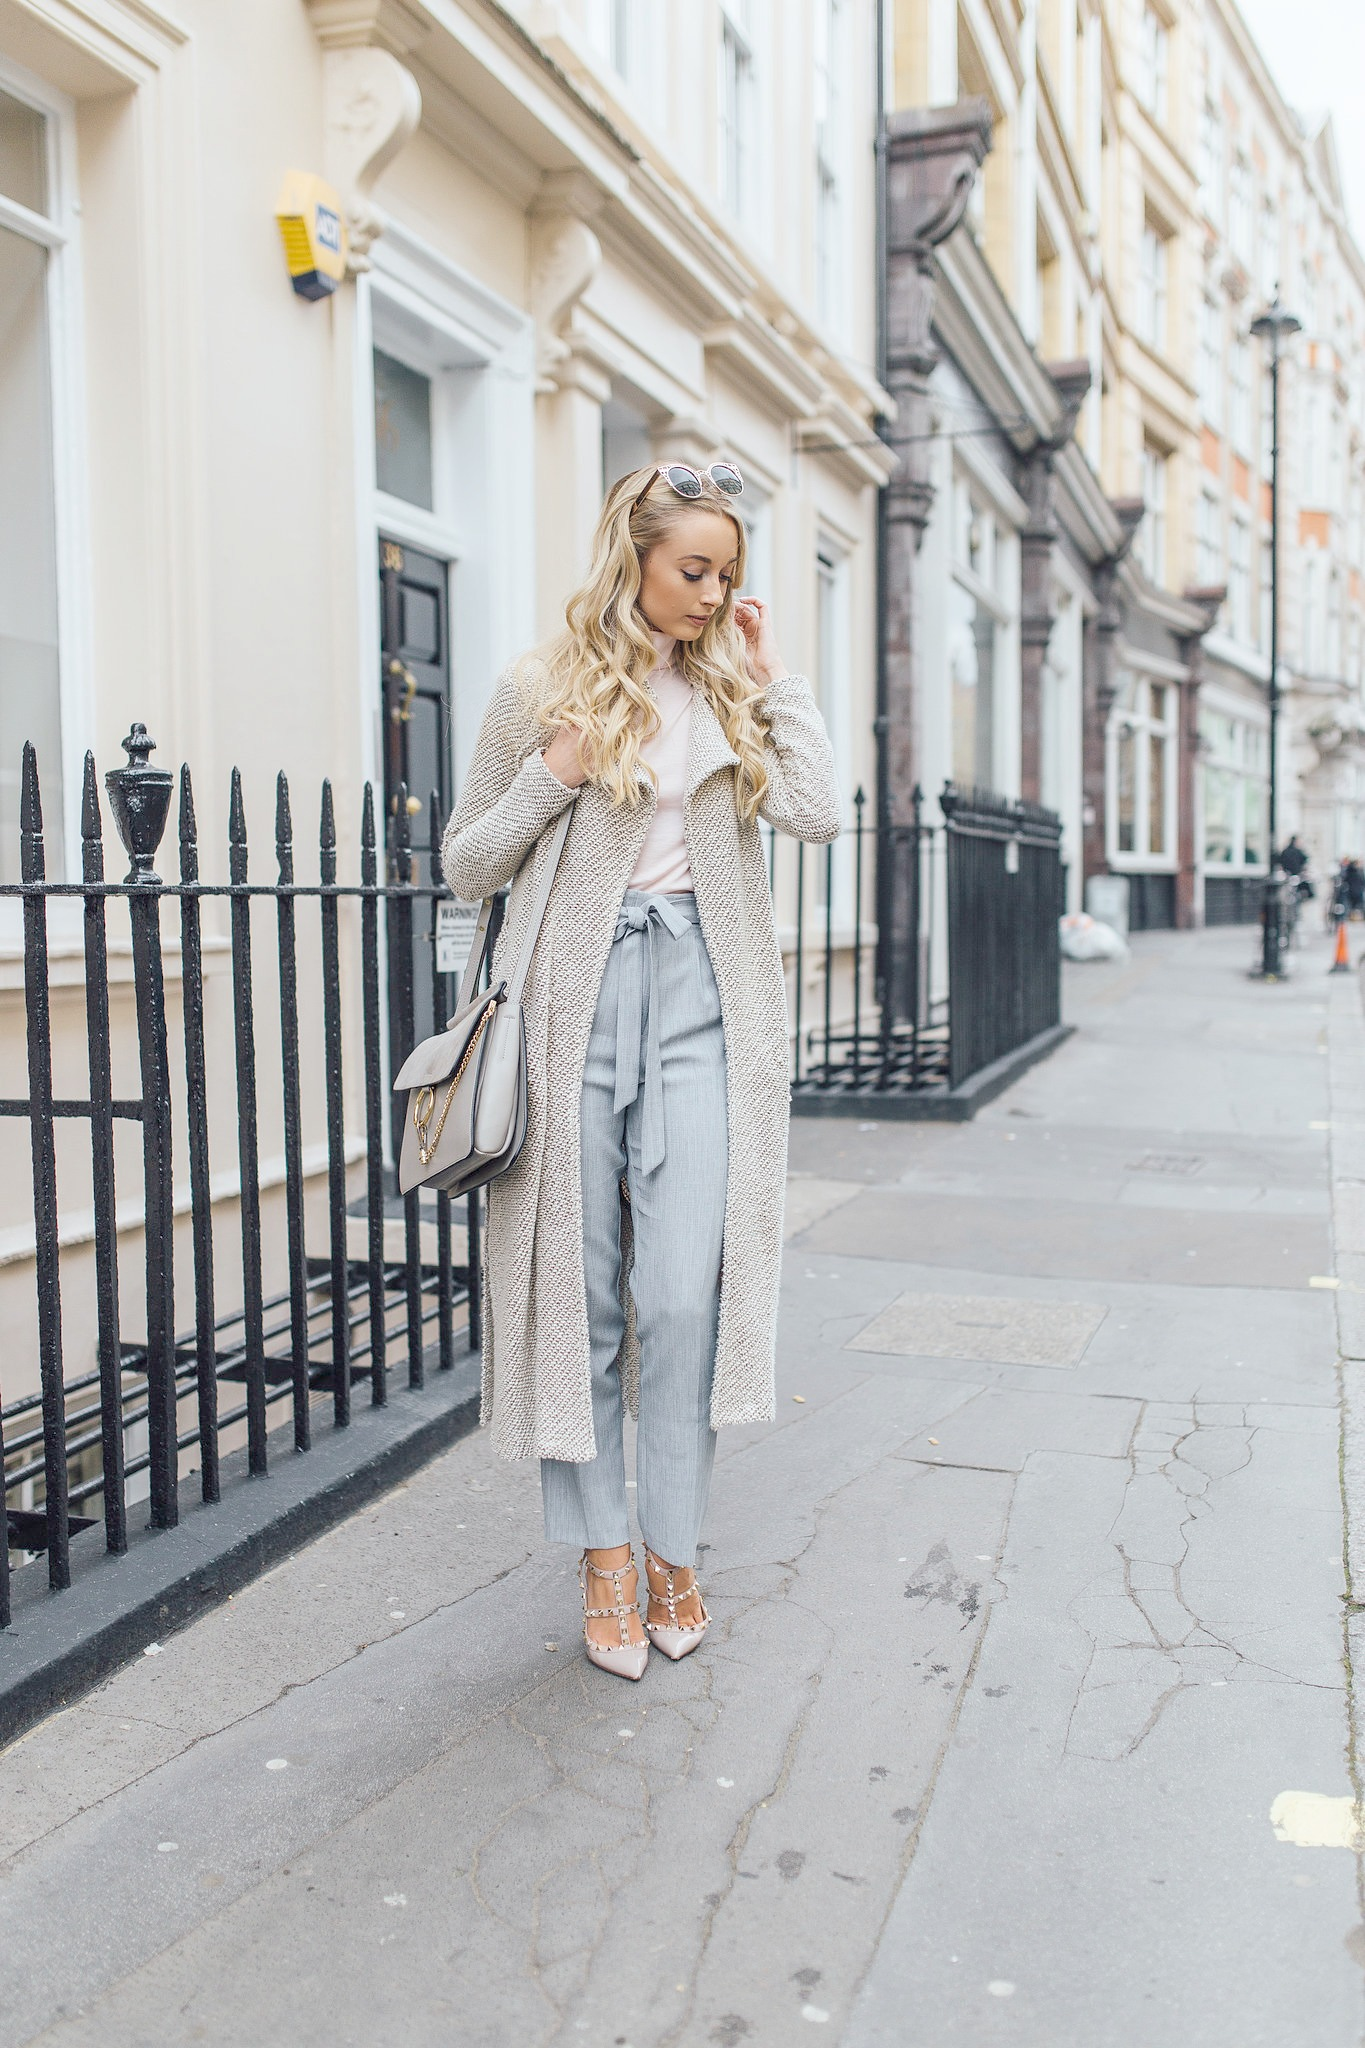 London Fashion Week Day One #ootd fashion mumblr 112